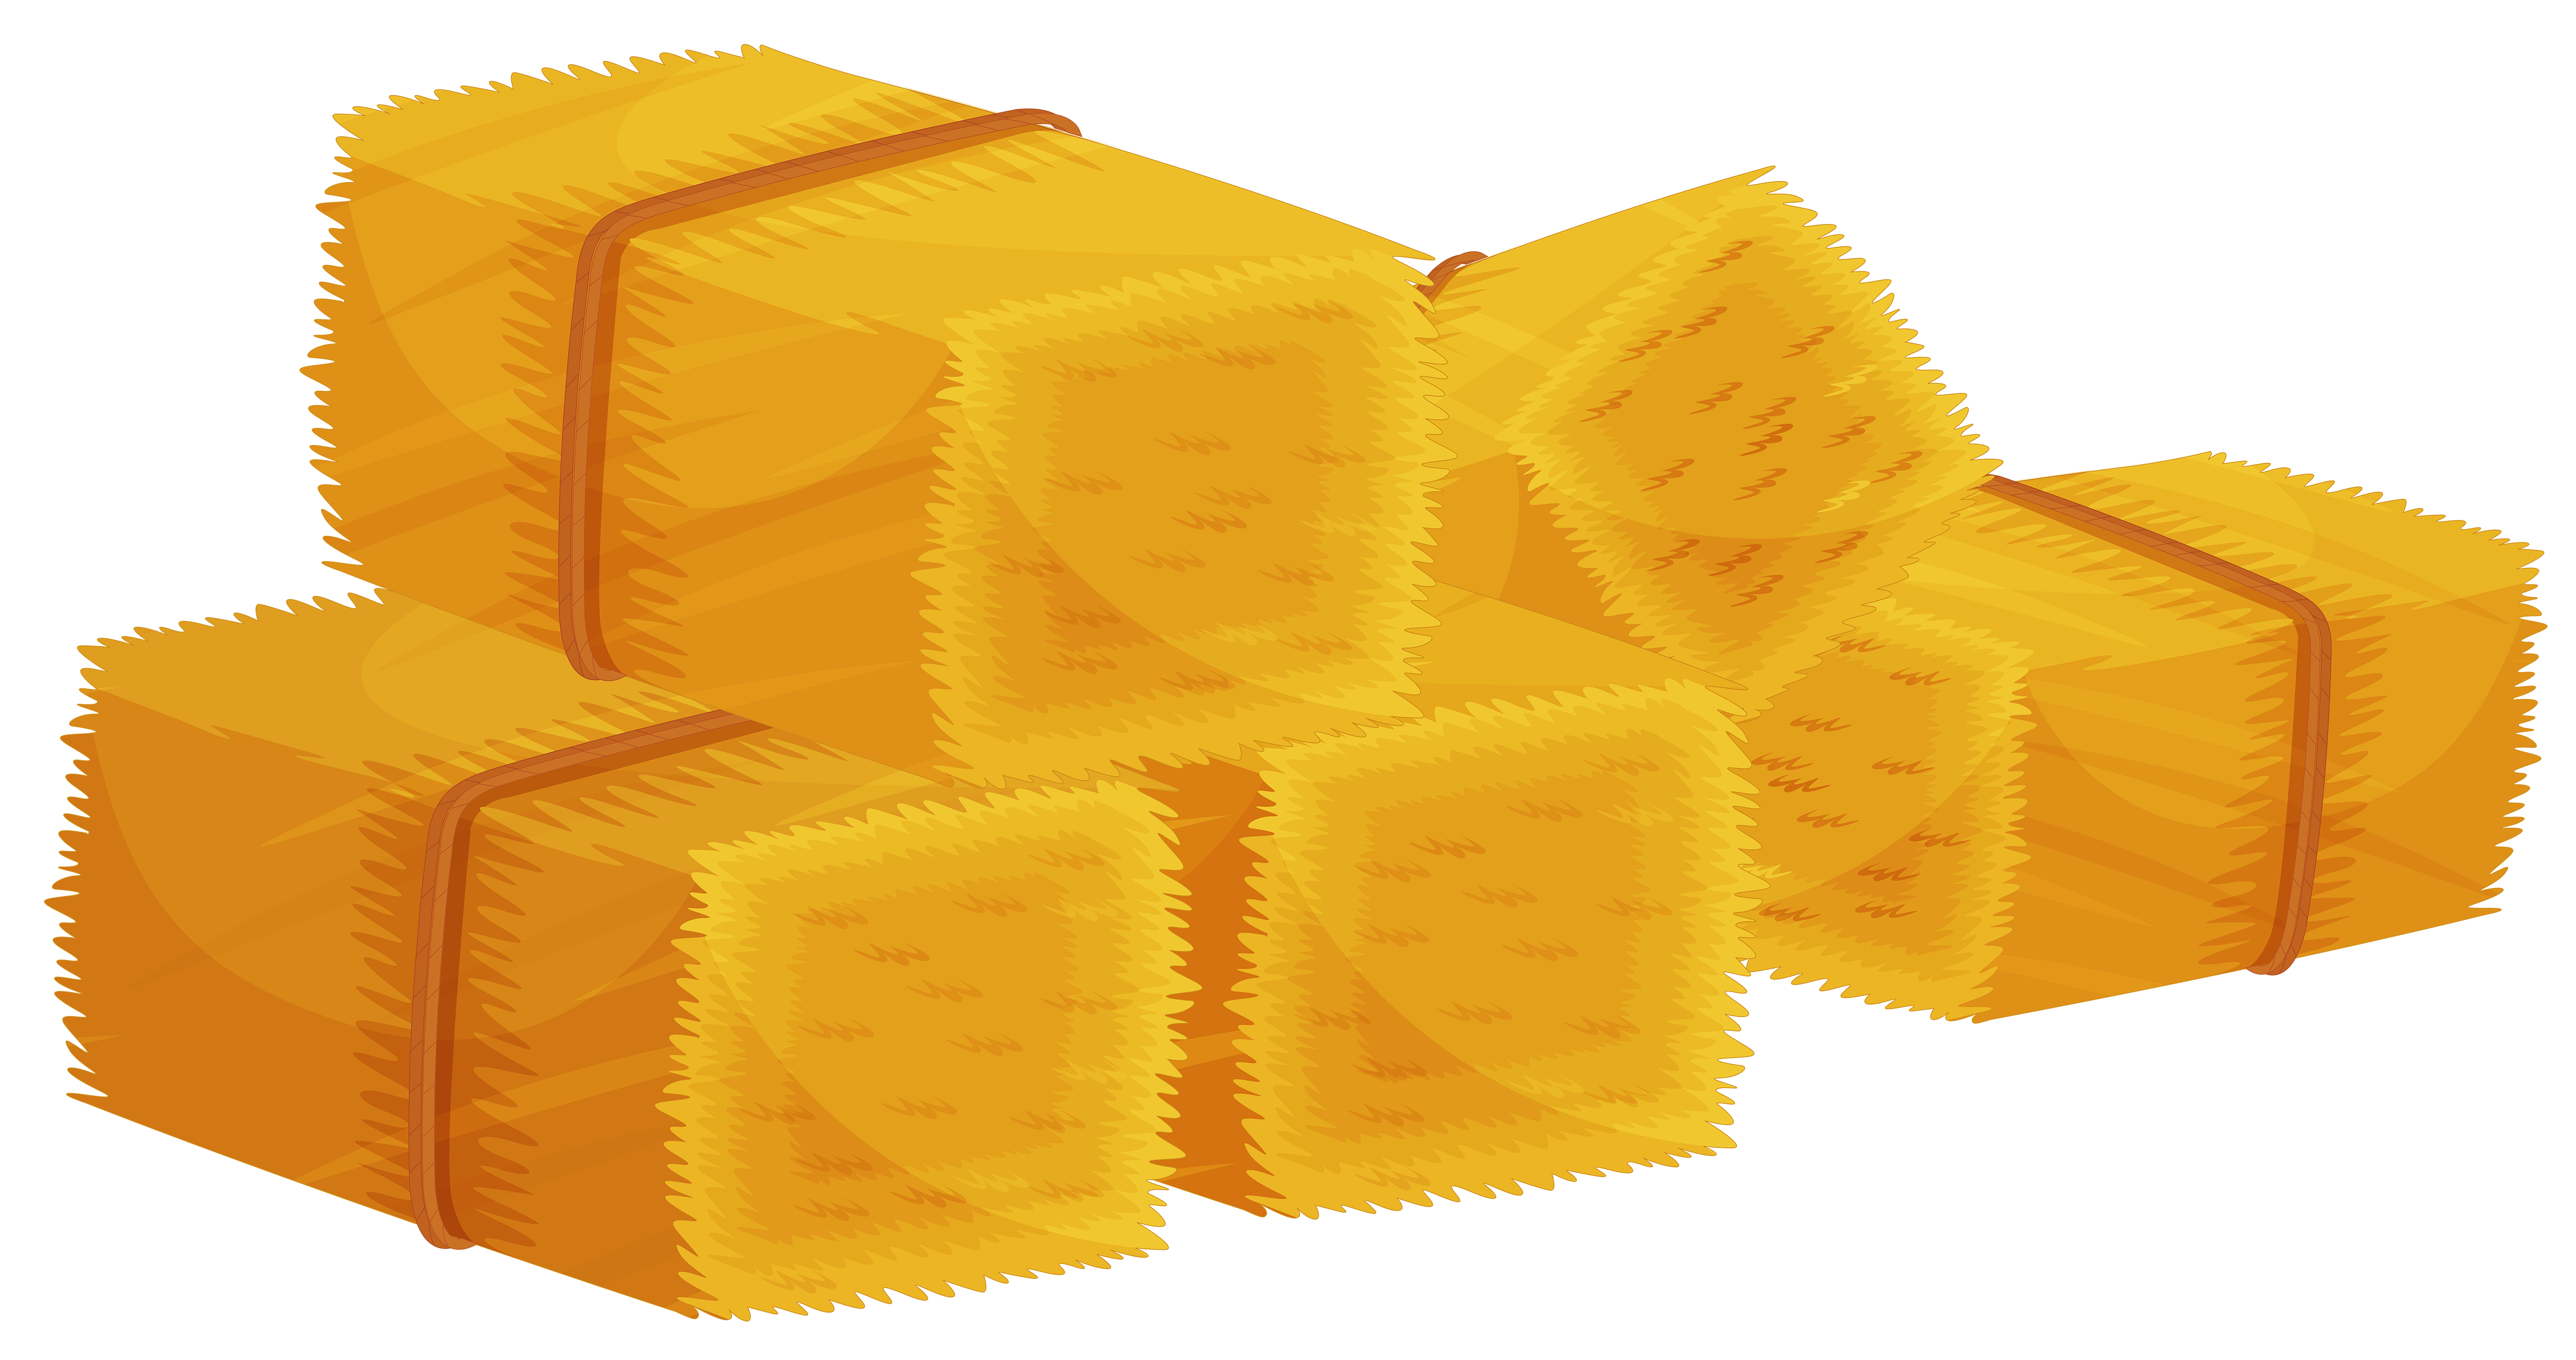 Free clipart hay. Straw bales png picture